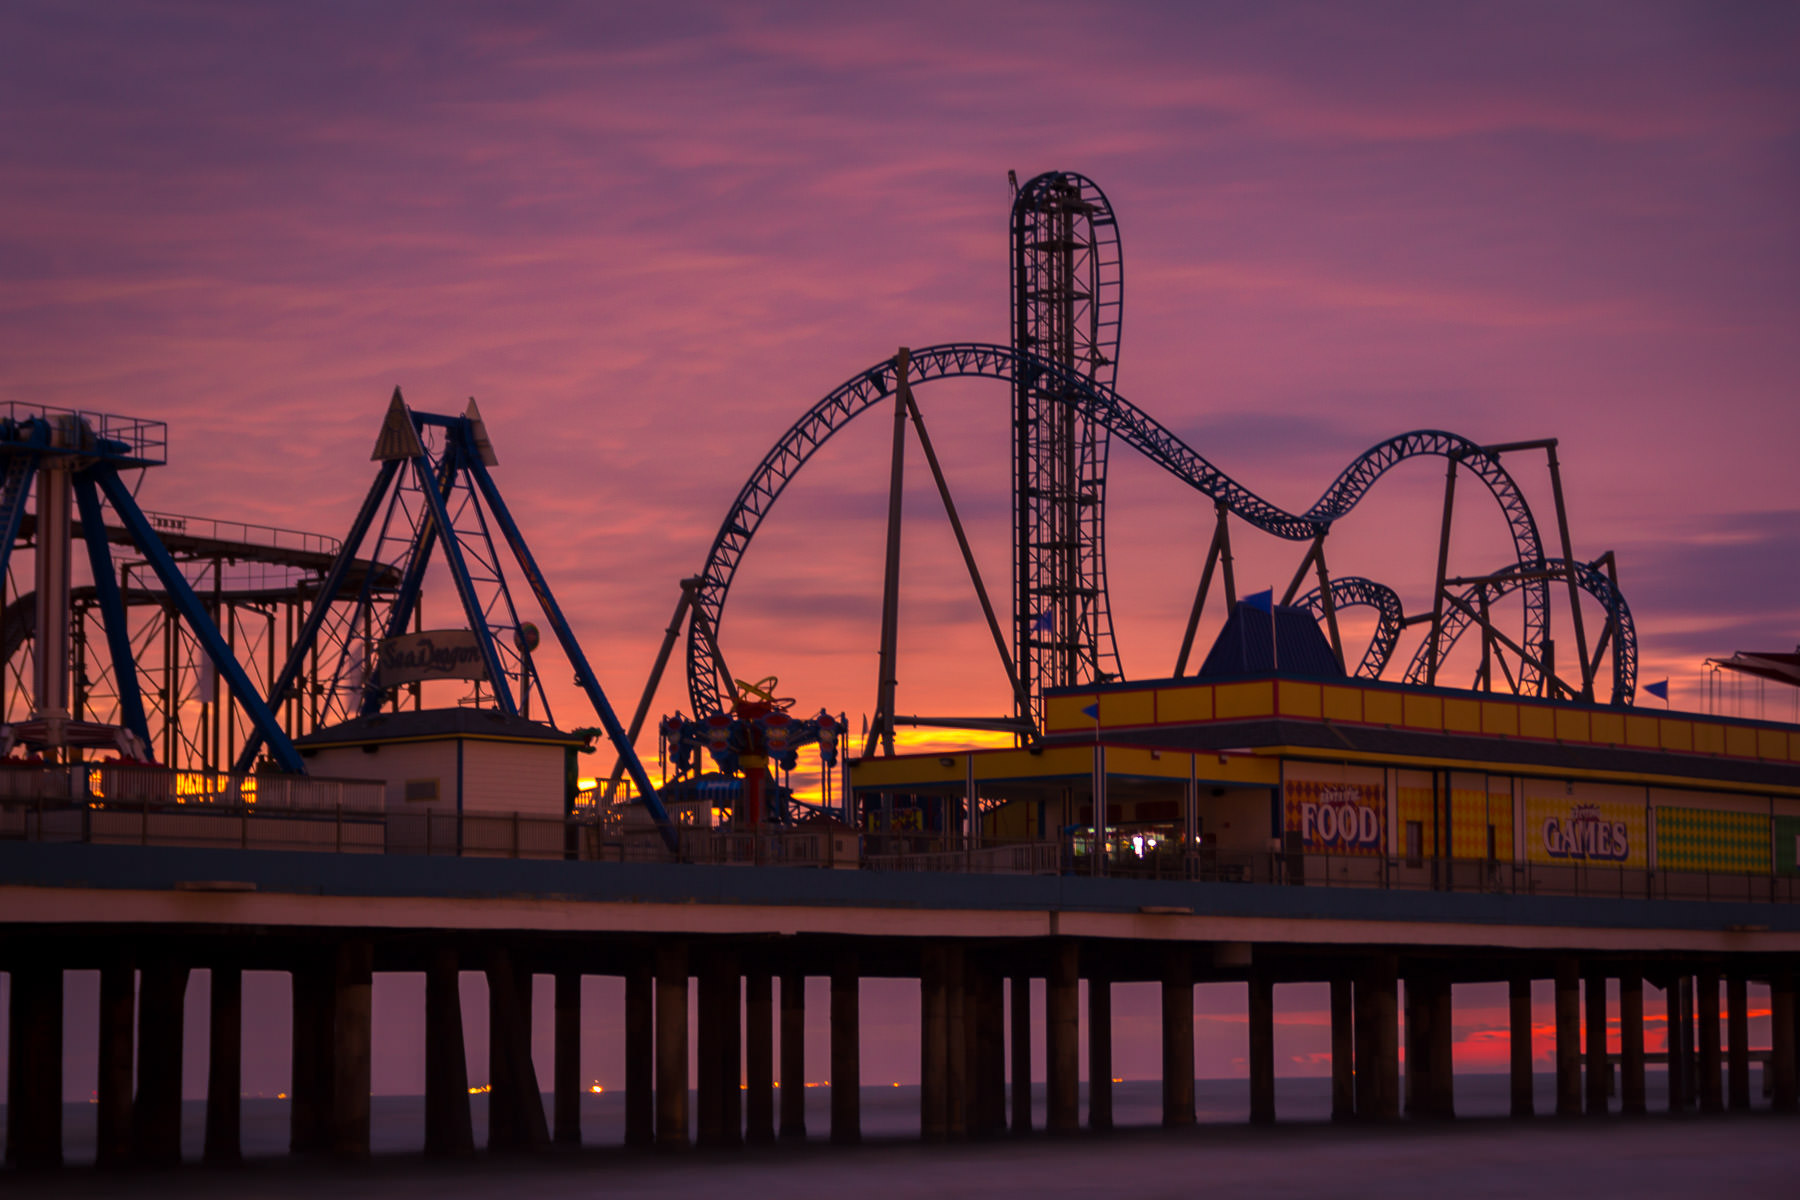 The sun rises over the Gulf of Mexico, behind Galveston, Texas' Historic Pleasure Pier.